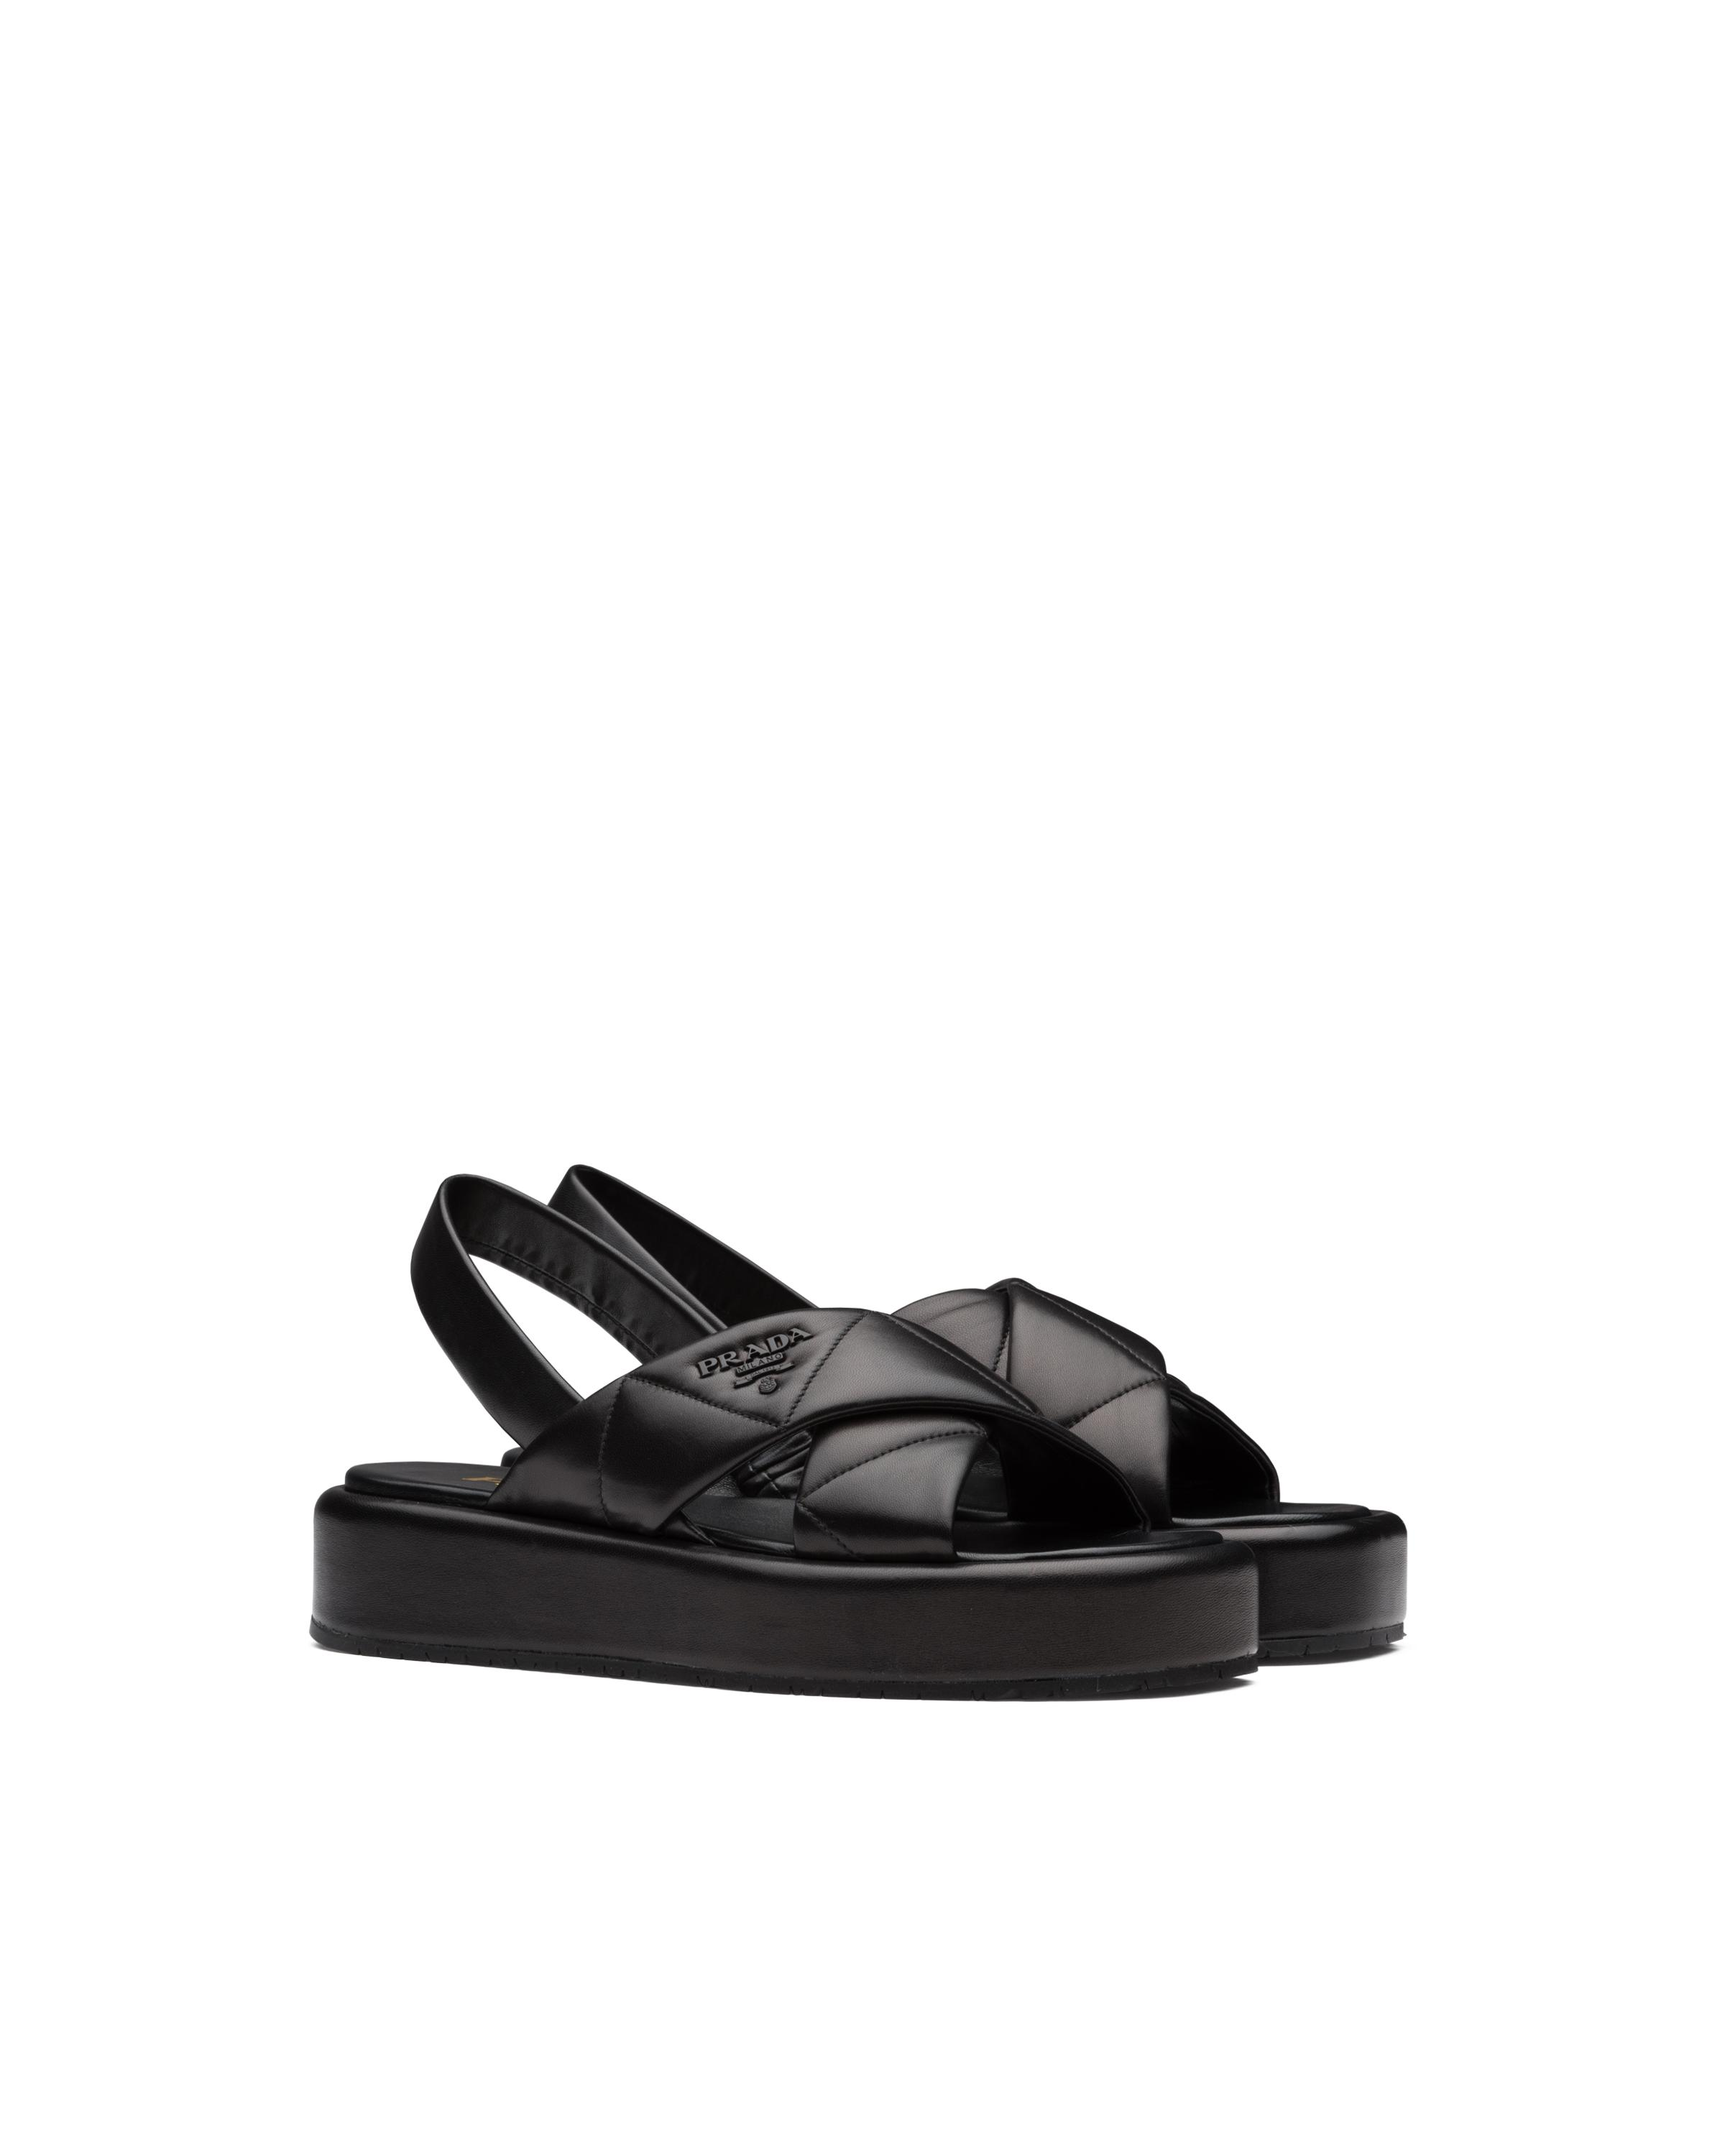 Quilted Nappa Leather Flatform Sandals Women Black 5